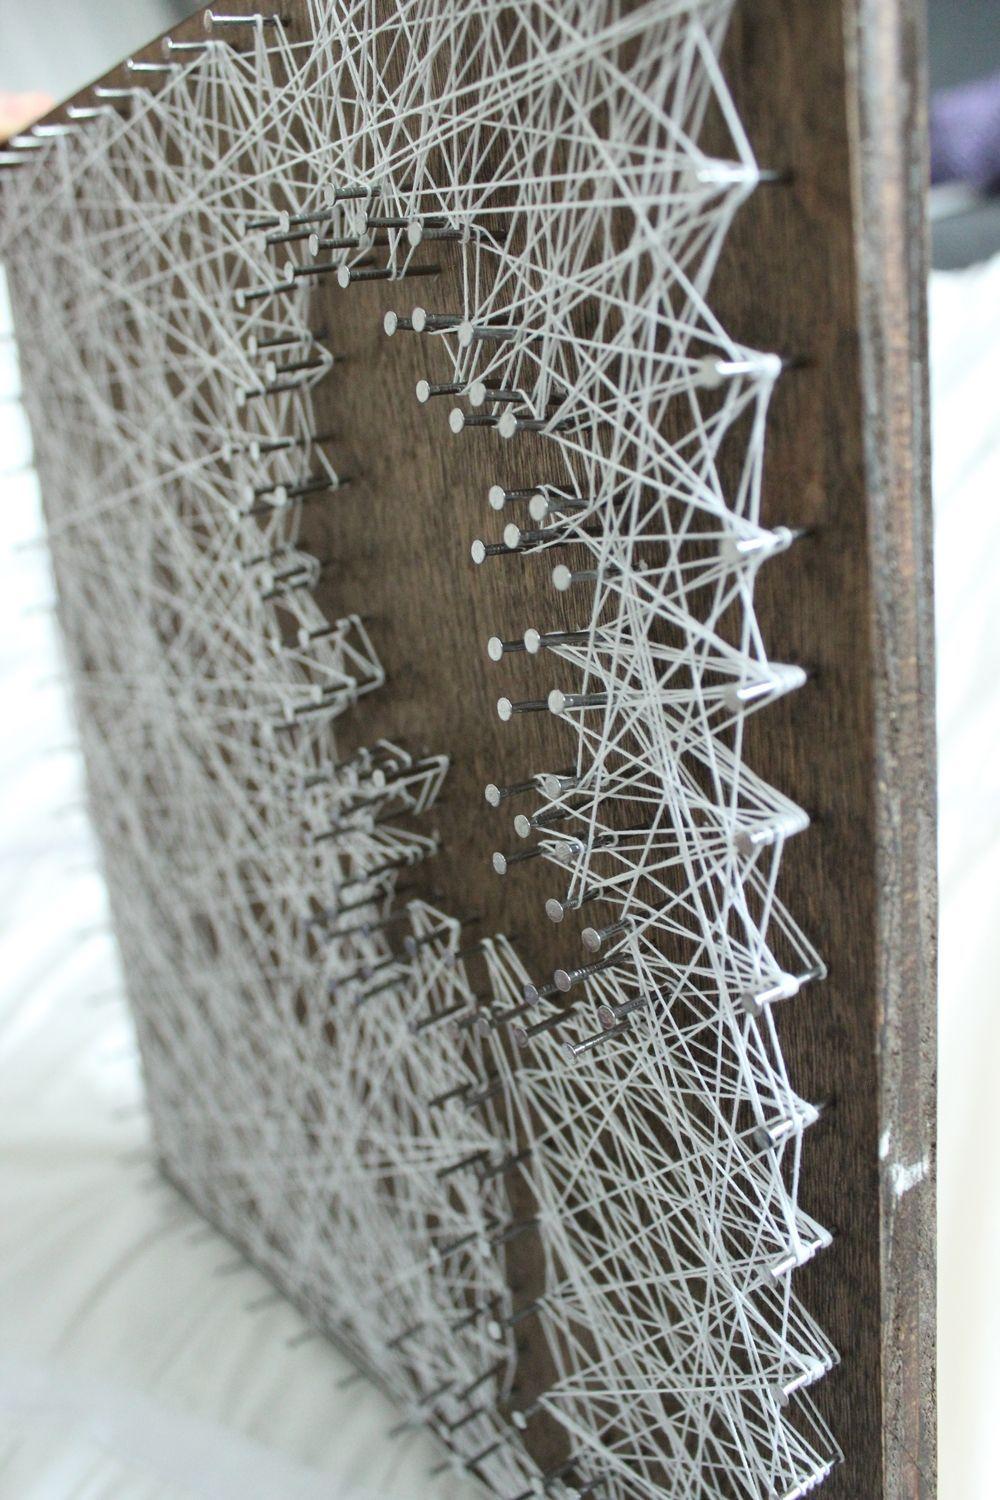 DIY String Art Tree - wood enhances the negative string art tree